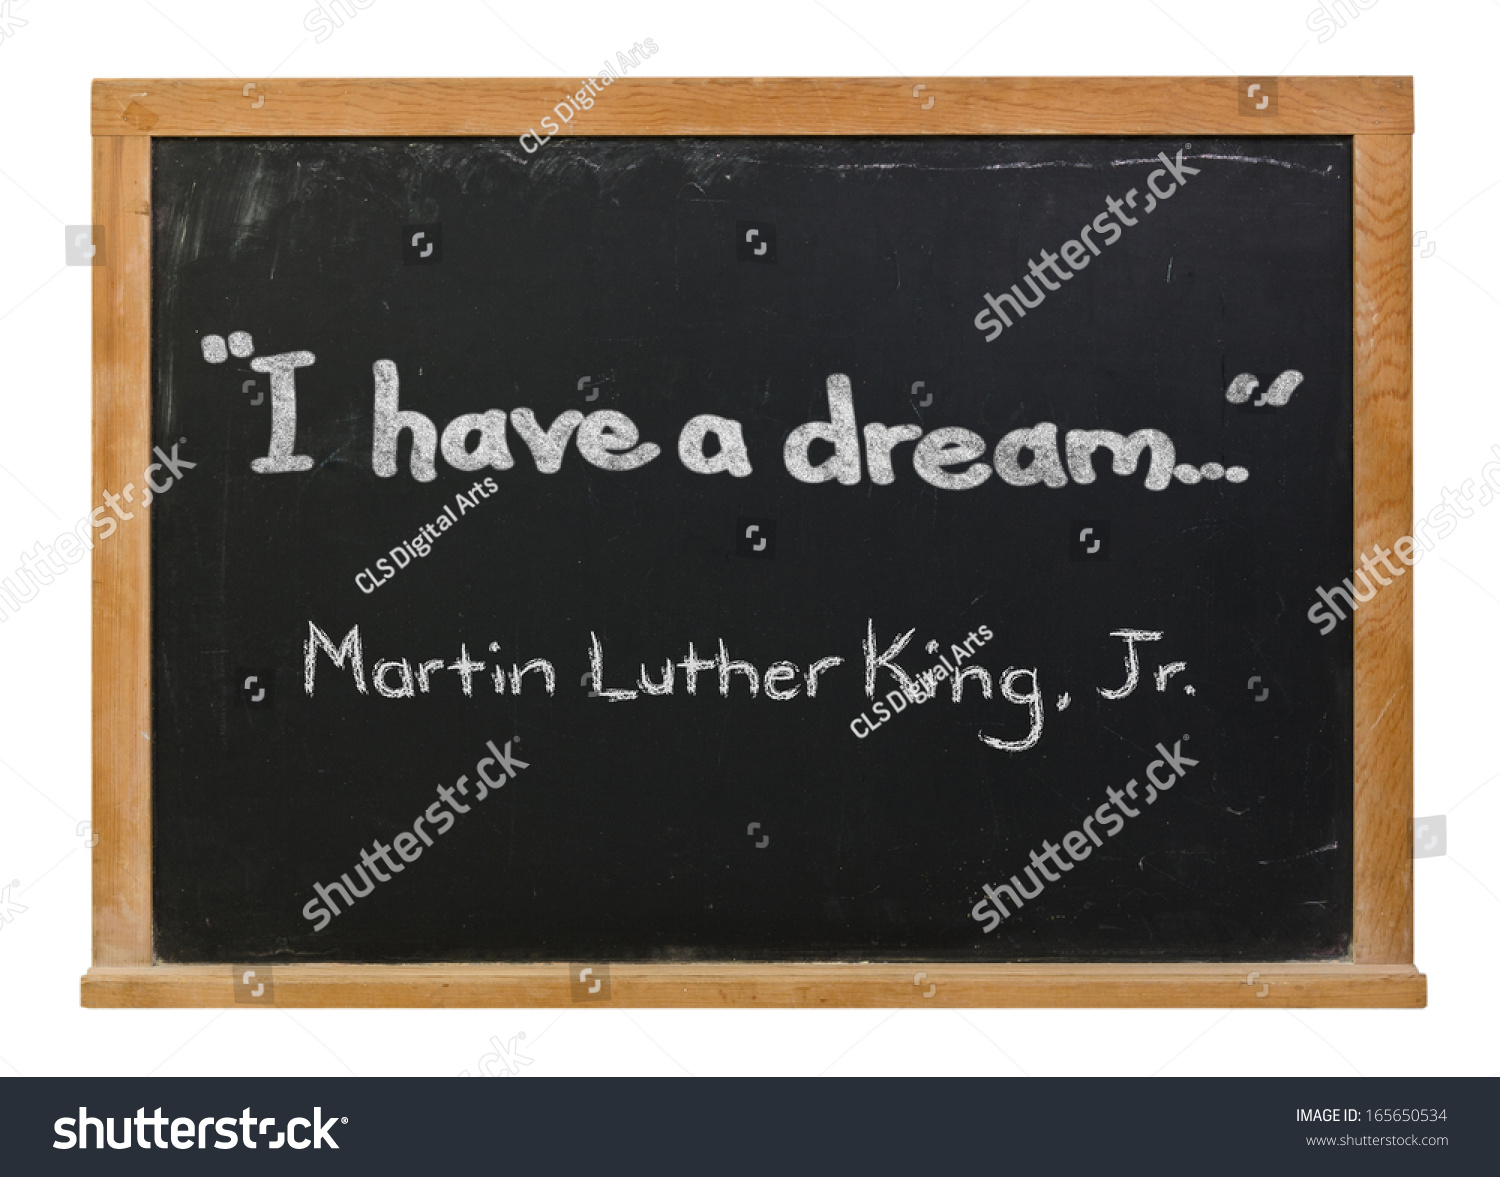 I Have A Dream And Martin Luther King Jr Written In White Chalk On A Black Chalkboard Isolated